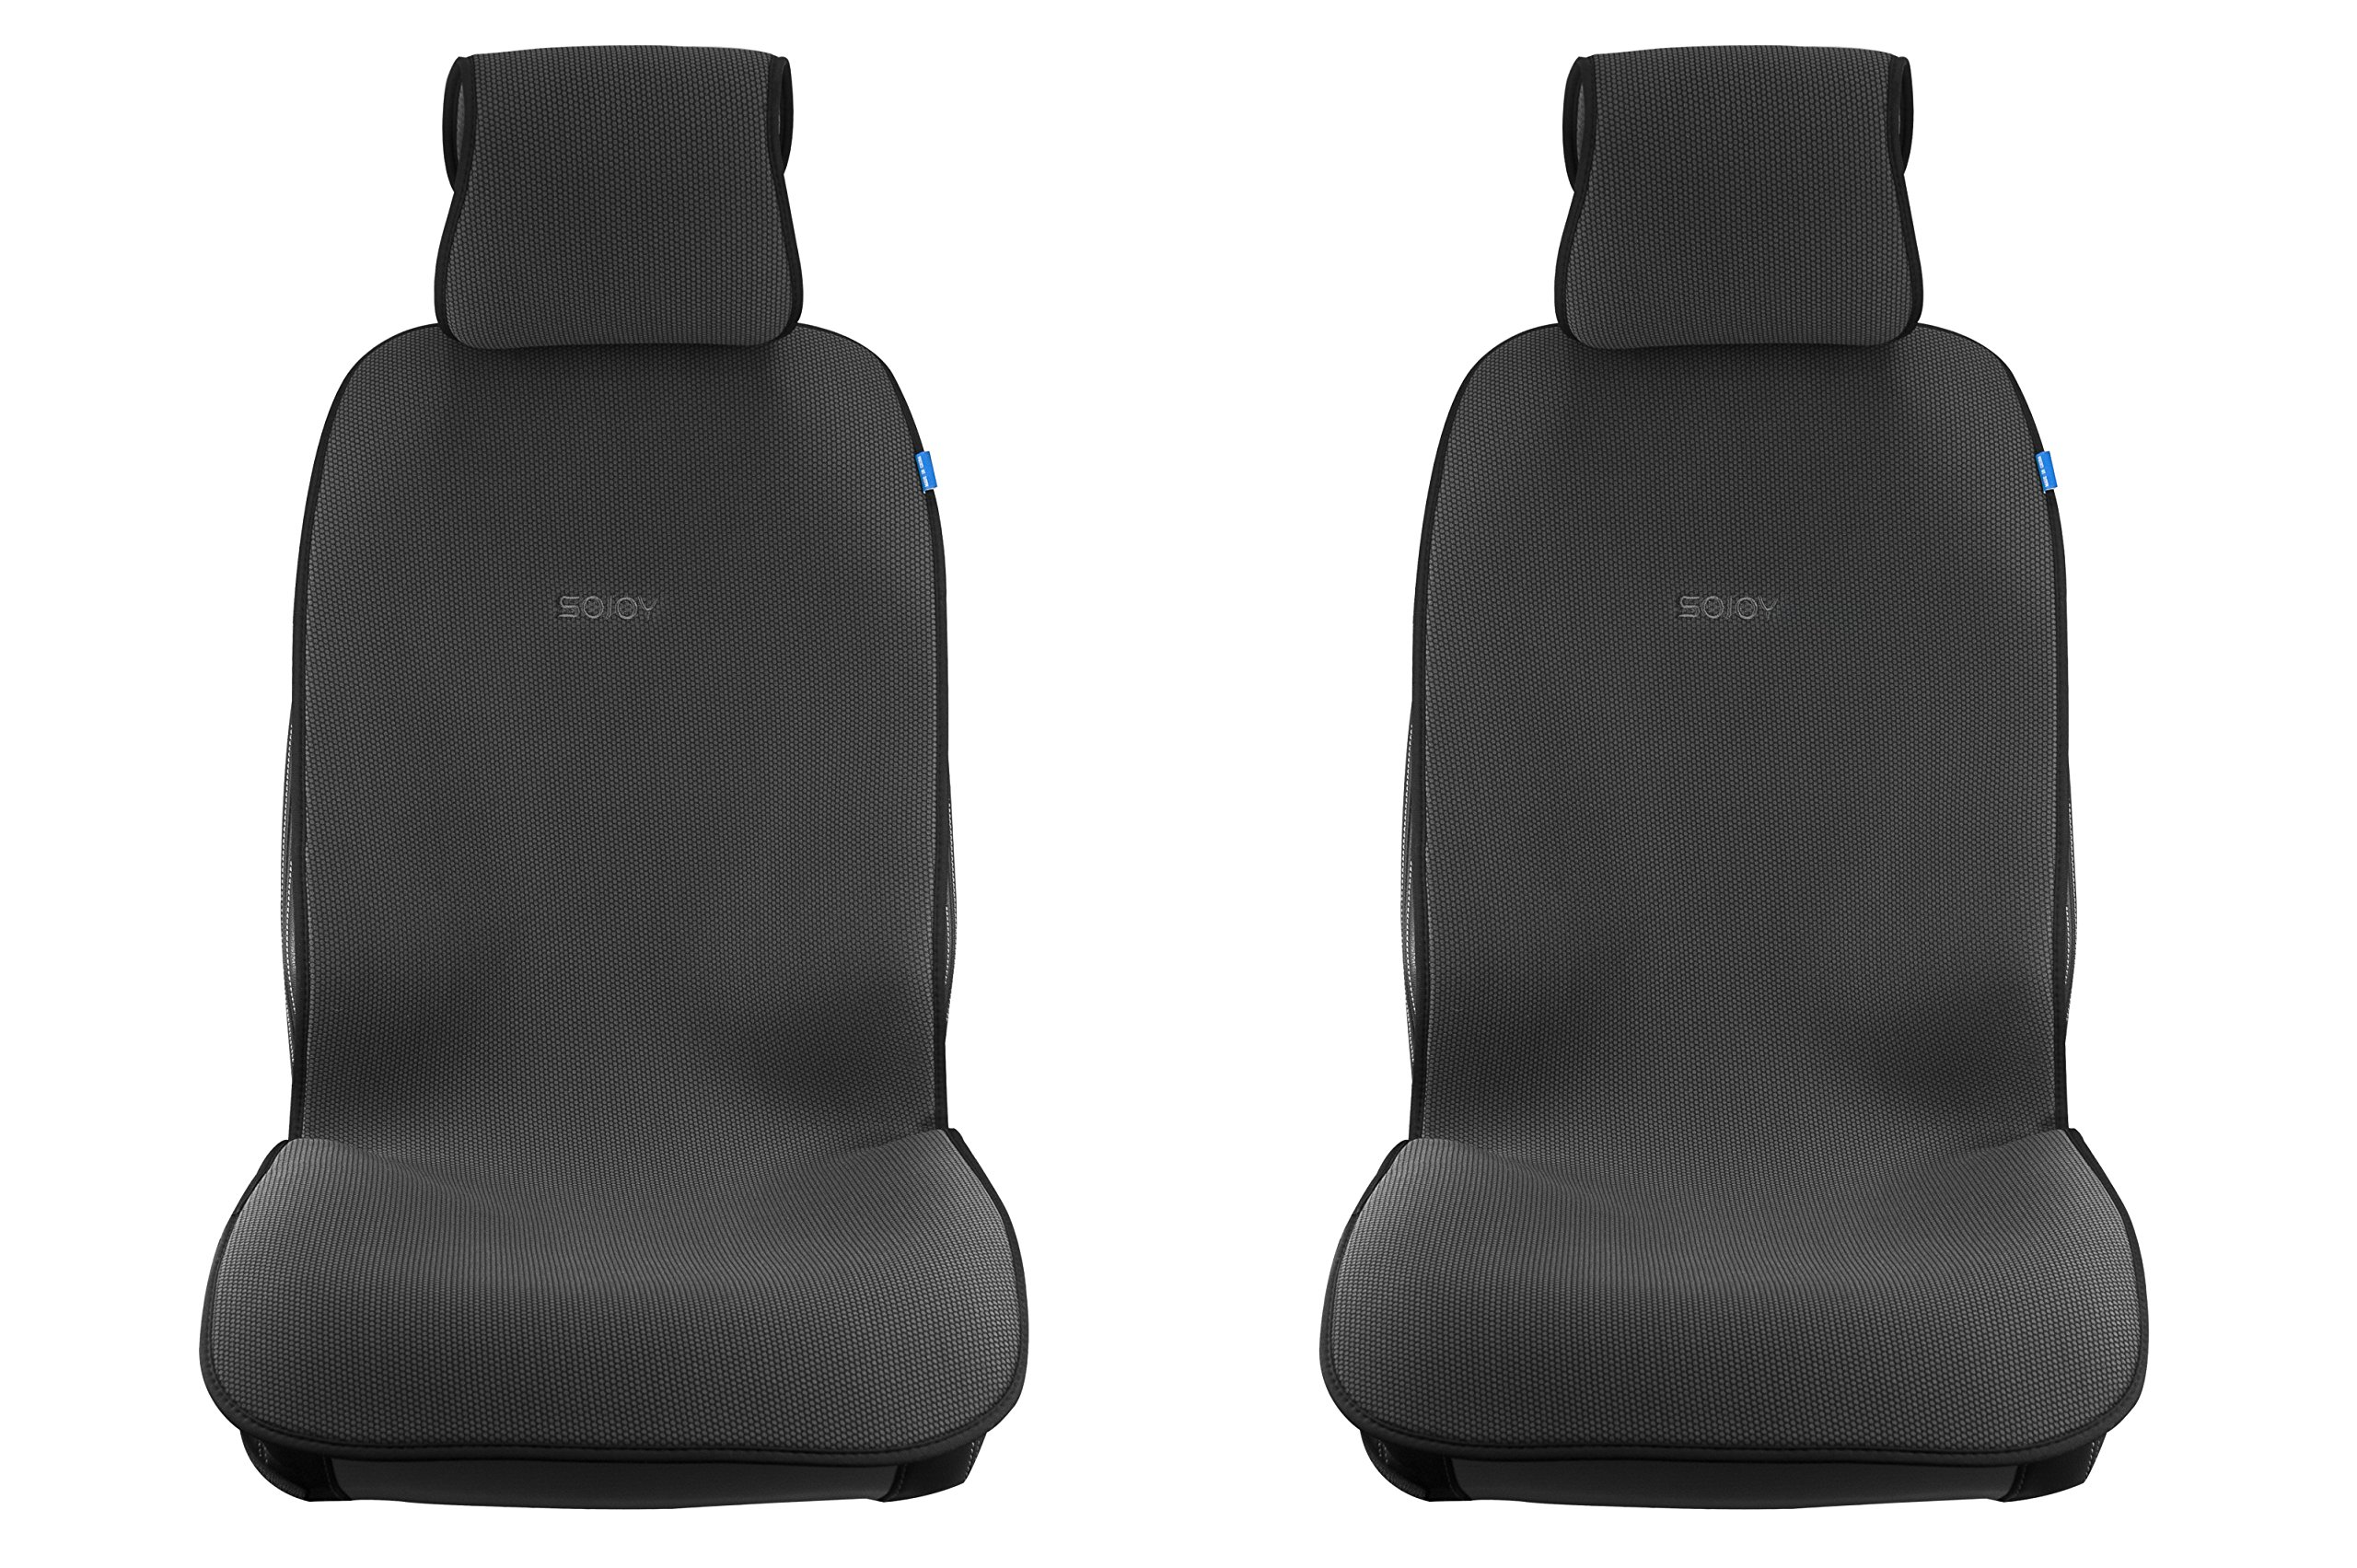 Sojoy Summer Cooling Four Seasons Car Seat Cushions For Front Two Seats Comes With 2 Pieces